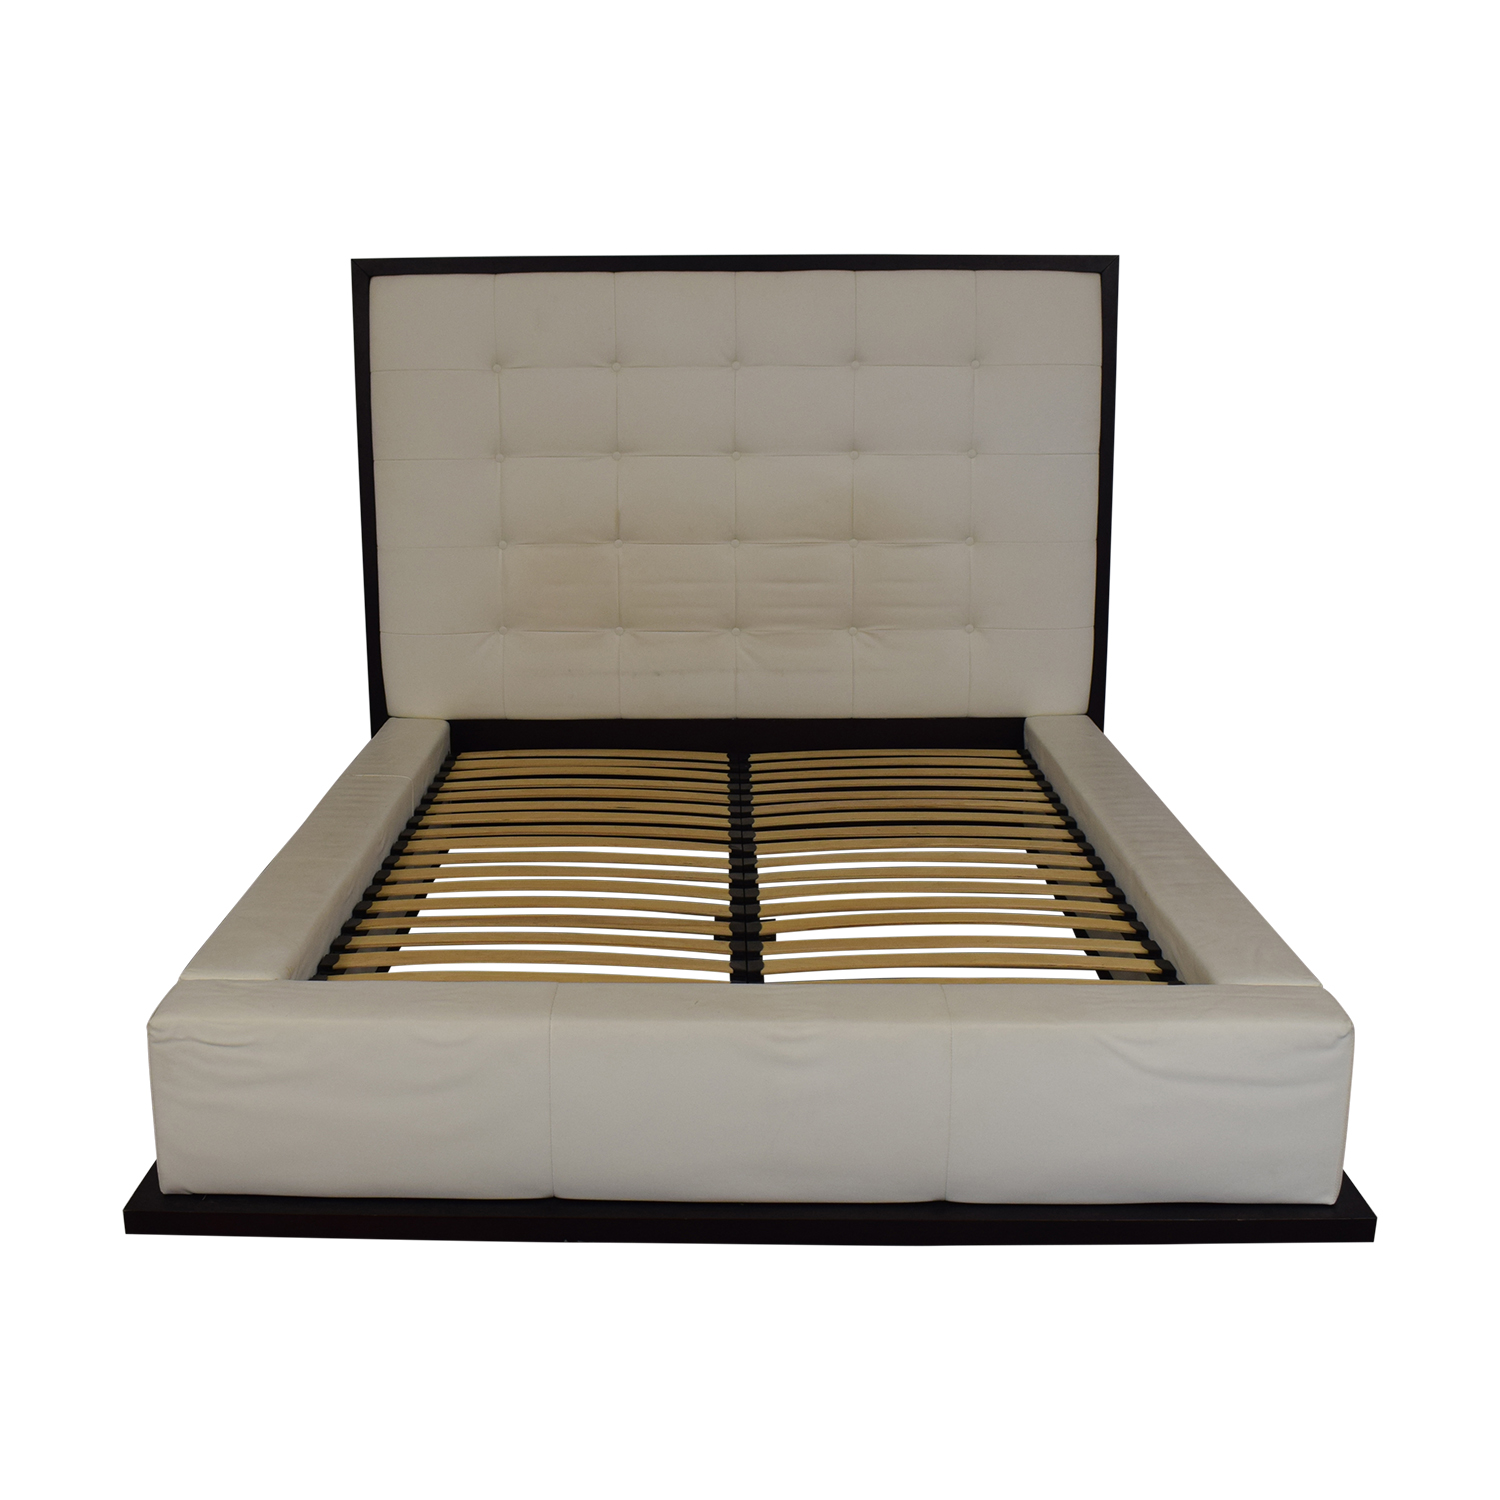 Modloft Ludlow White Tufted Upholstered Queen Bed Frame Modloft